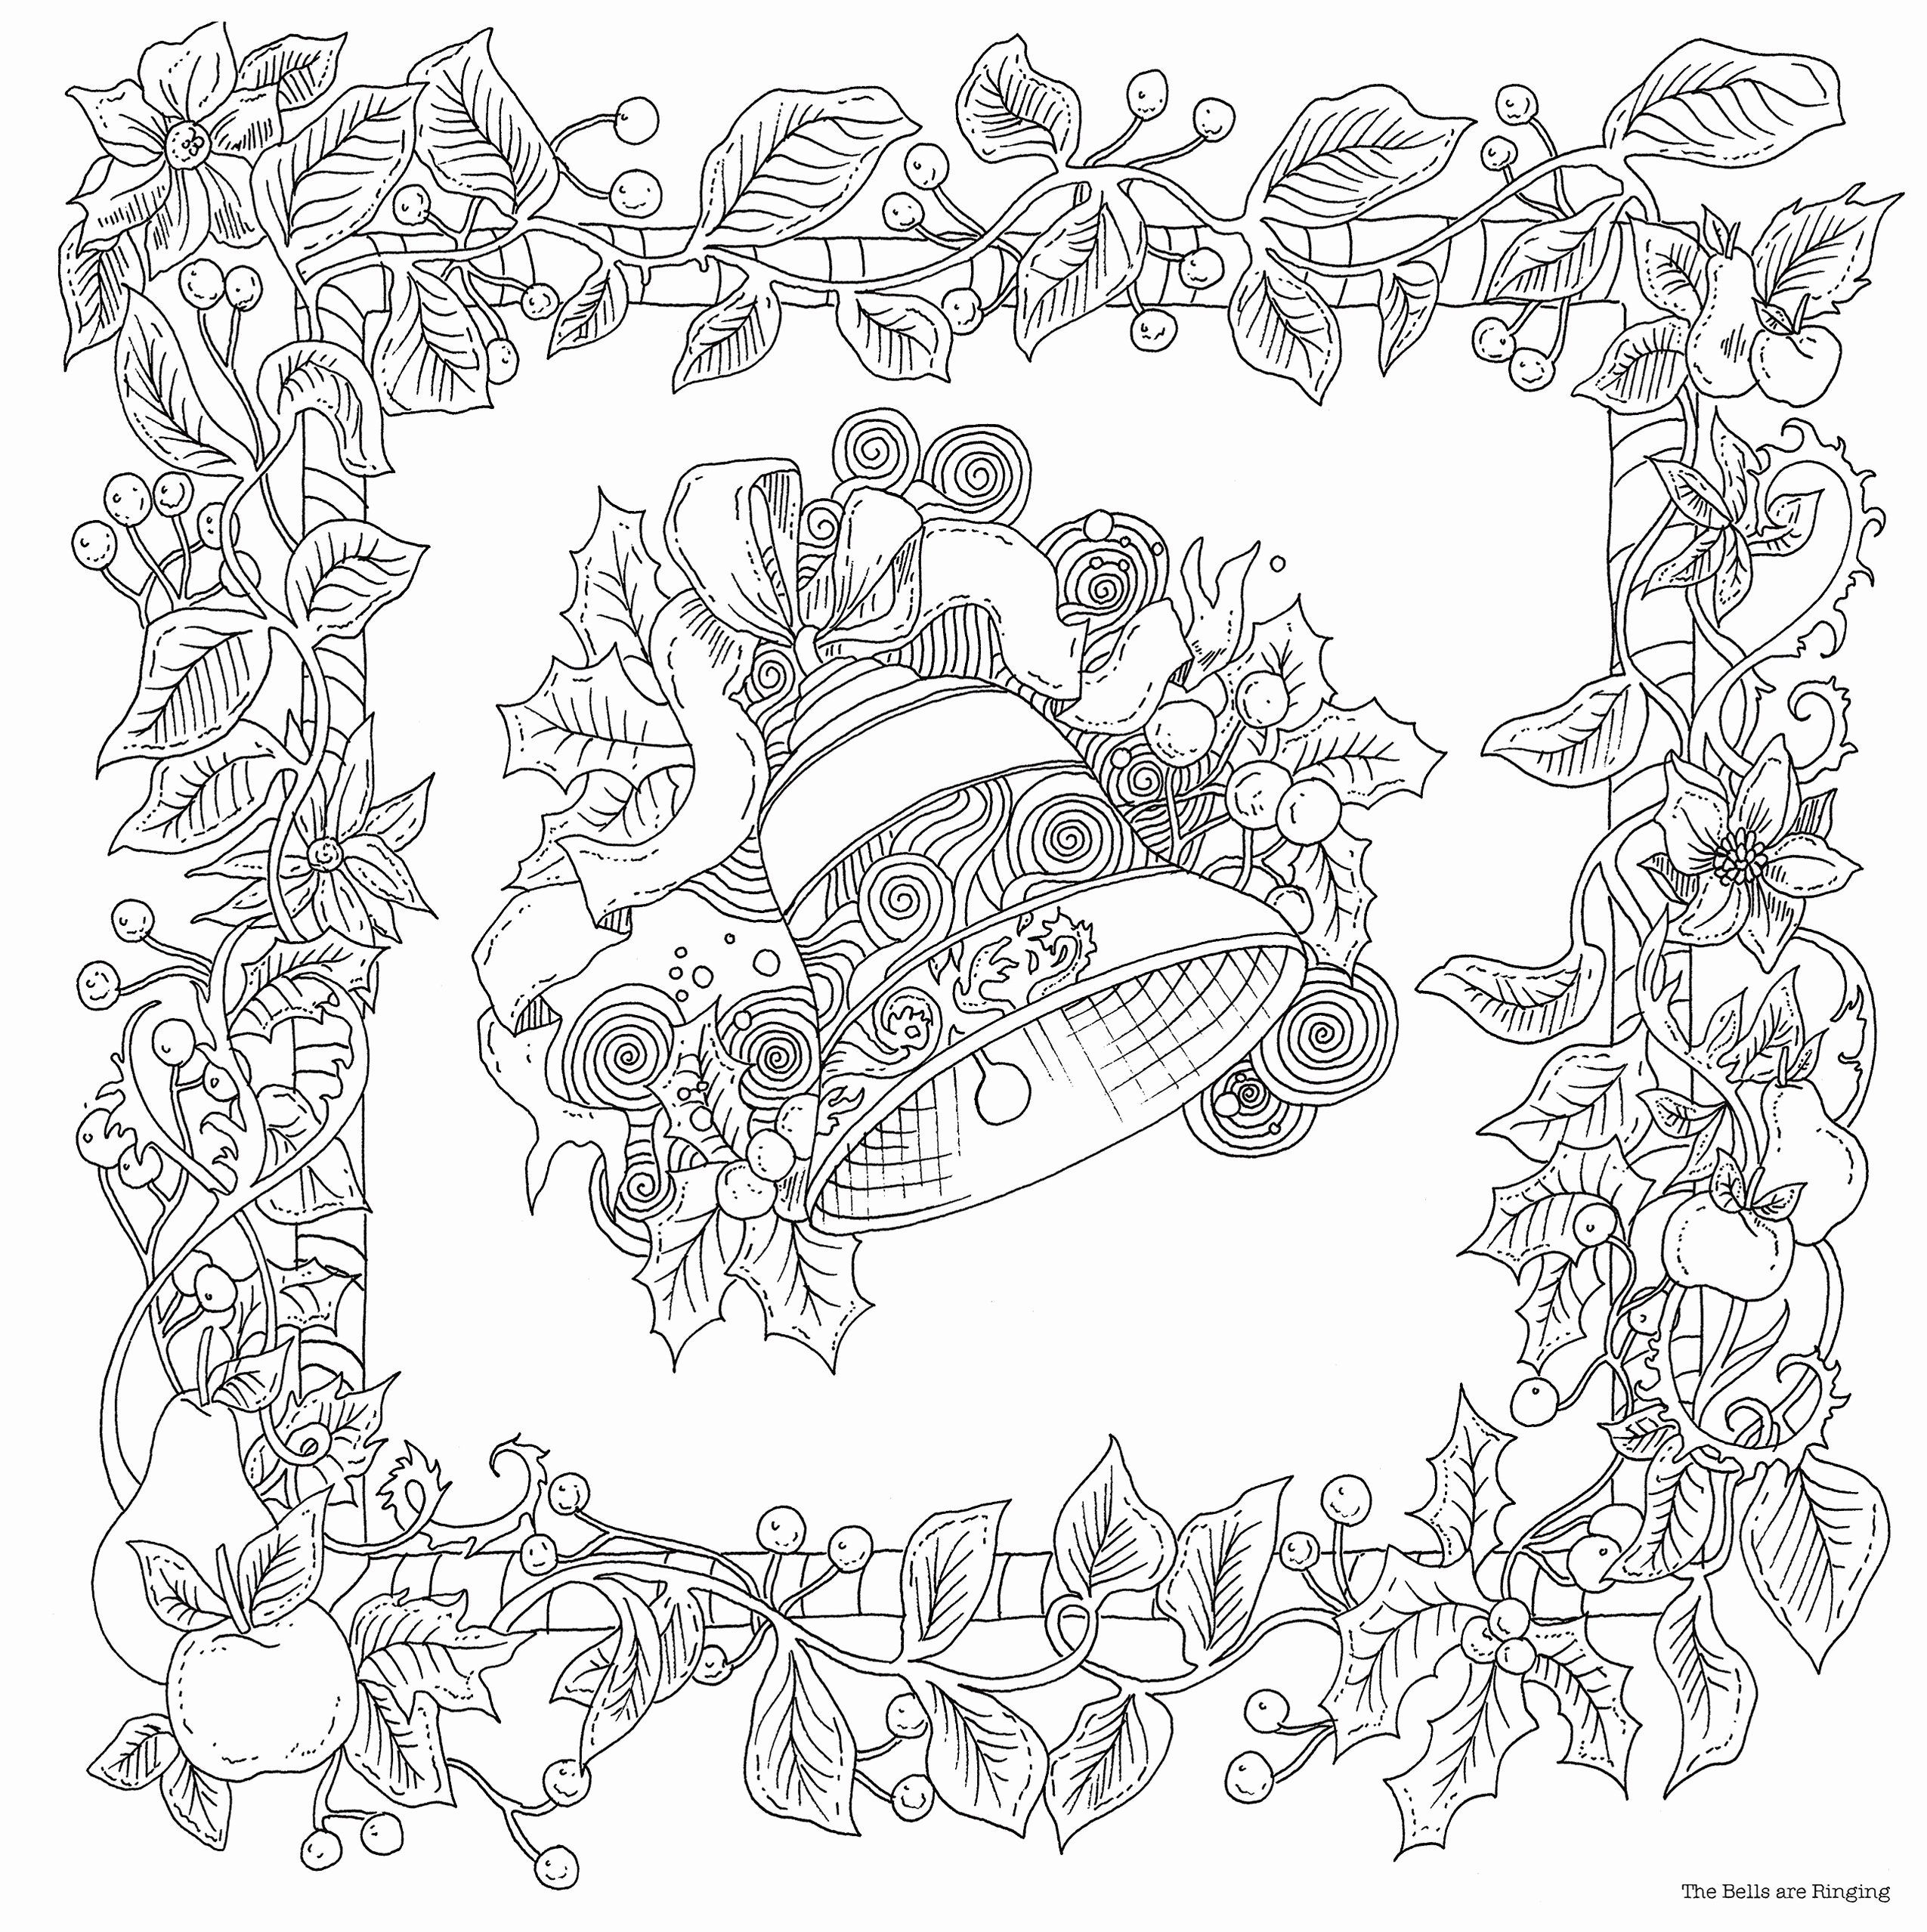 Winter Magic Coloring Book Inspirational Magical Christmas Bell Coloring Book Lizzie Mary Christmas Coloring Pages Christmas Coloring Books Coloring Books